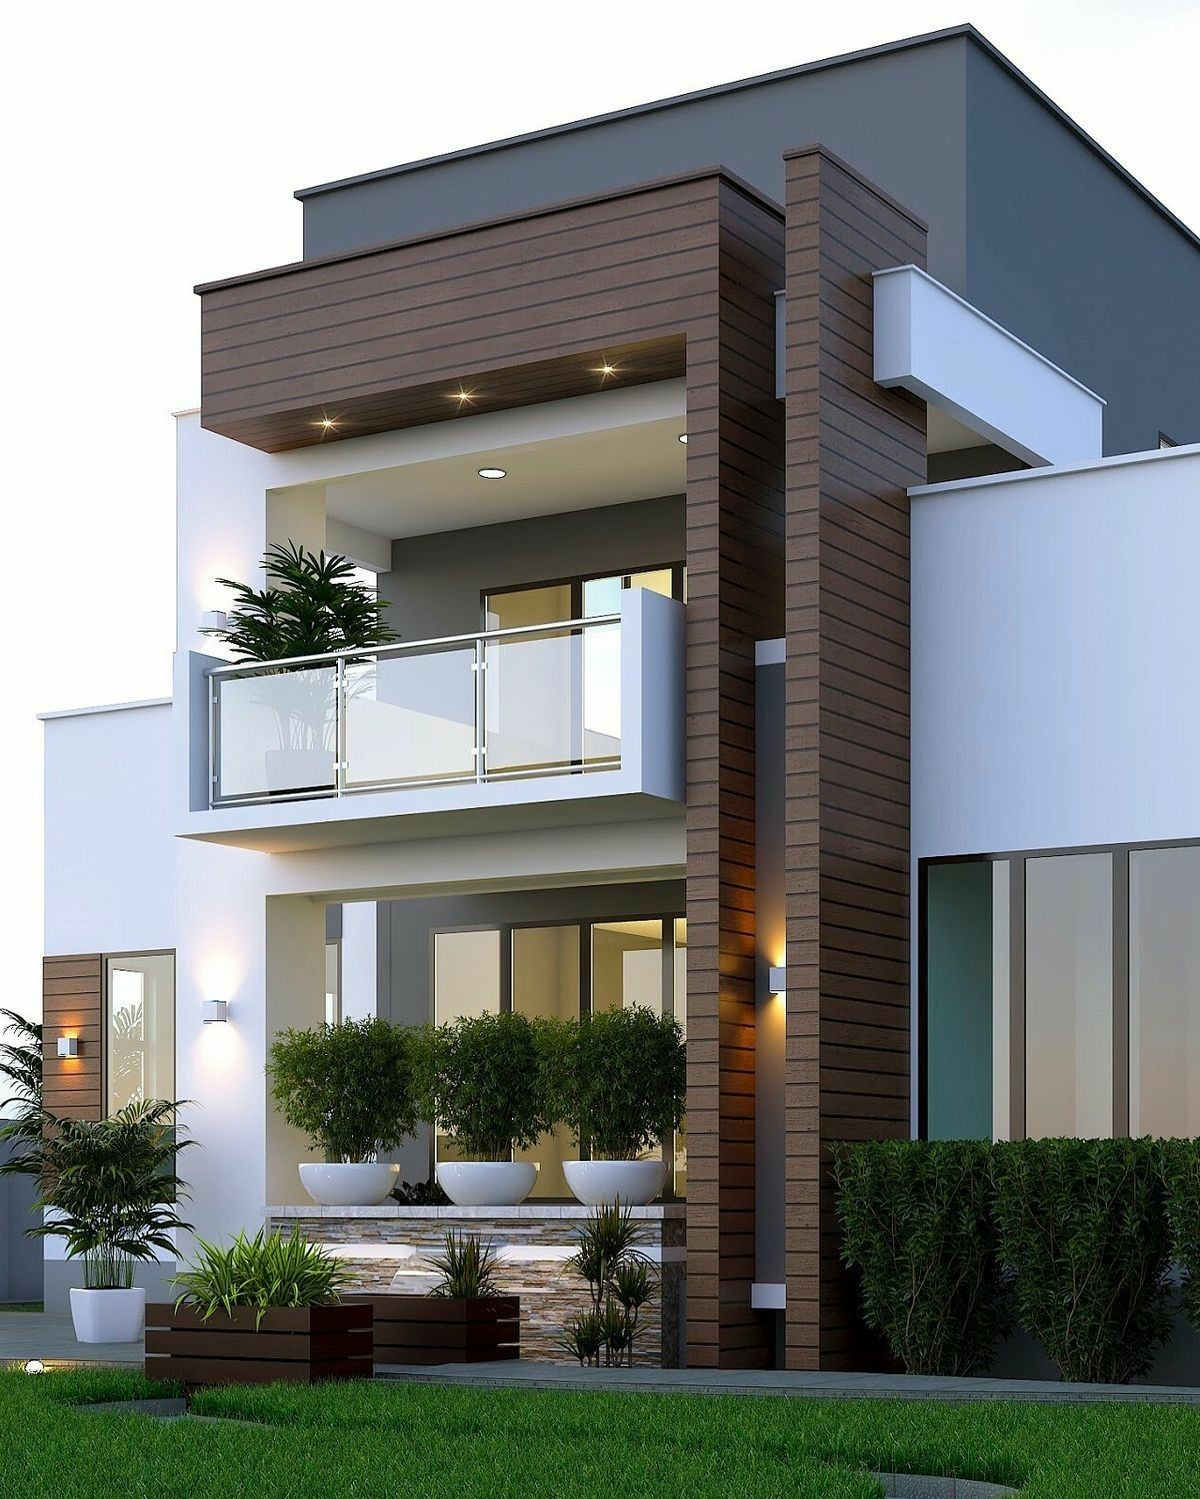 Minimalist Exterior Home Design Ideas: House Design, Minimalist House